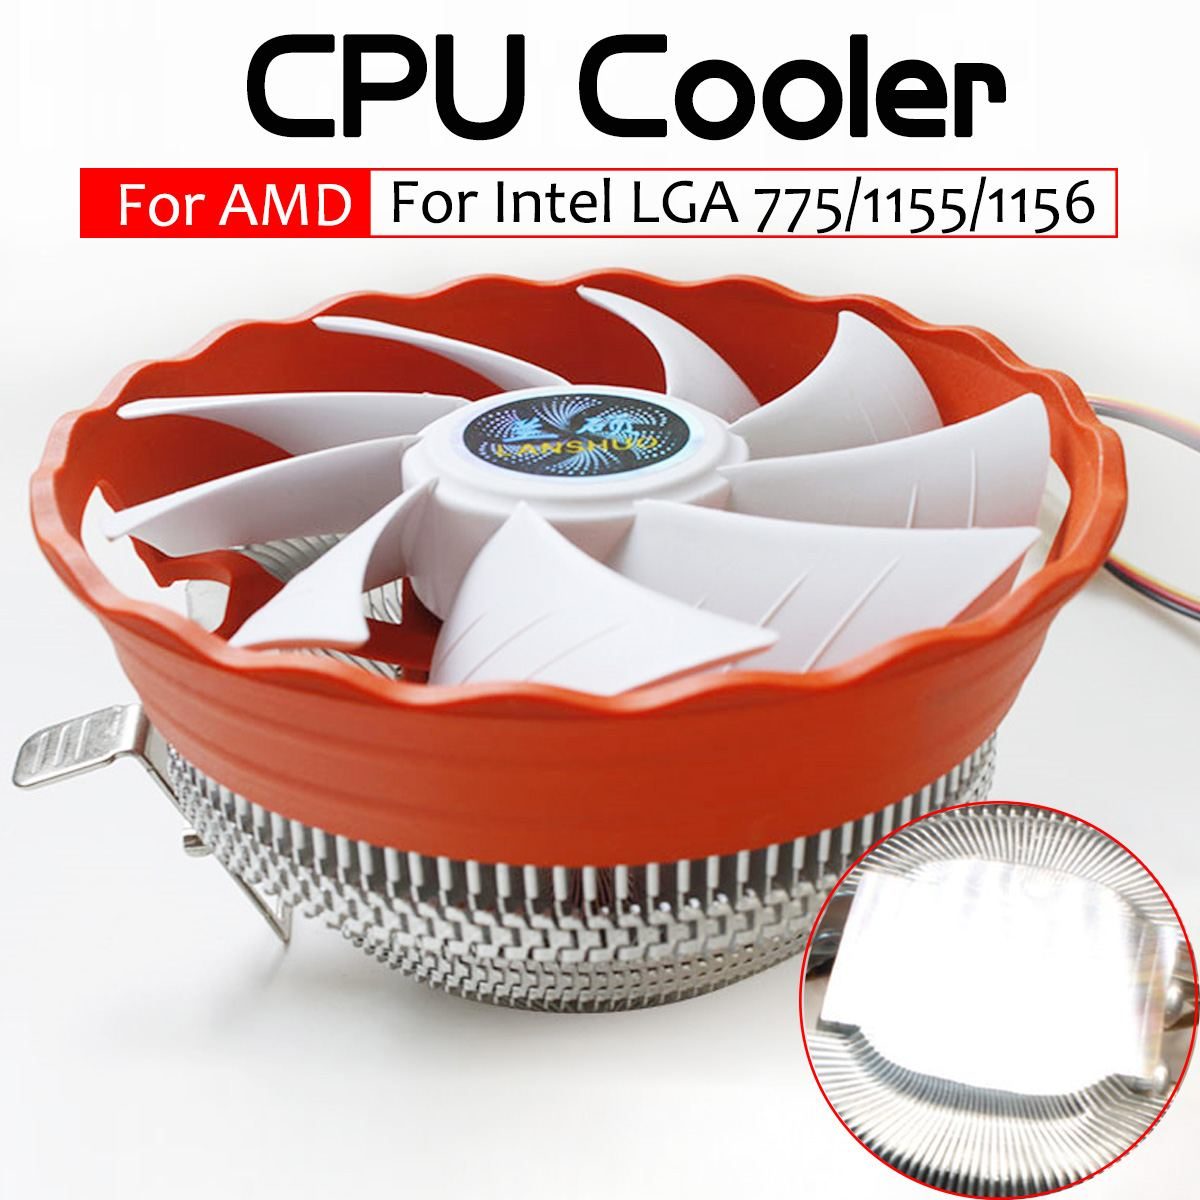 12V CPU <font><b>Cooler</b></font> Fan Cooling Heatsink RGB Fan <font><b>Cooler</b></font> Computer PC Case Cooling Radiator for Intel LGA 775 1150 1155 <font><b>1156</b></font> AMD1150 image